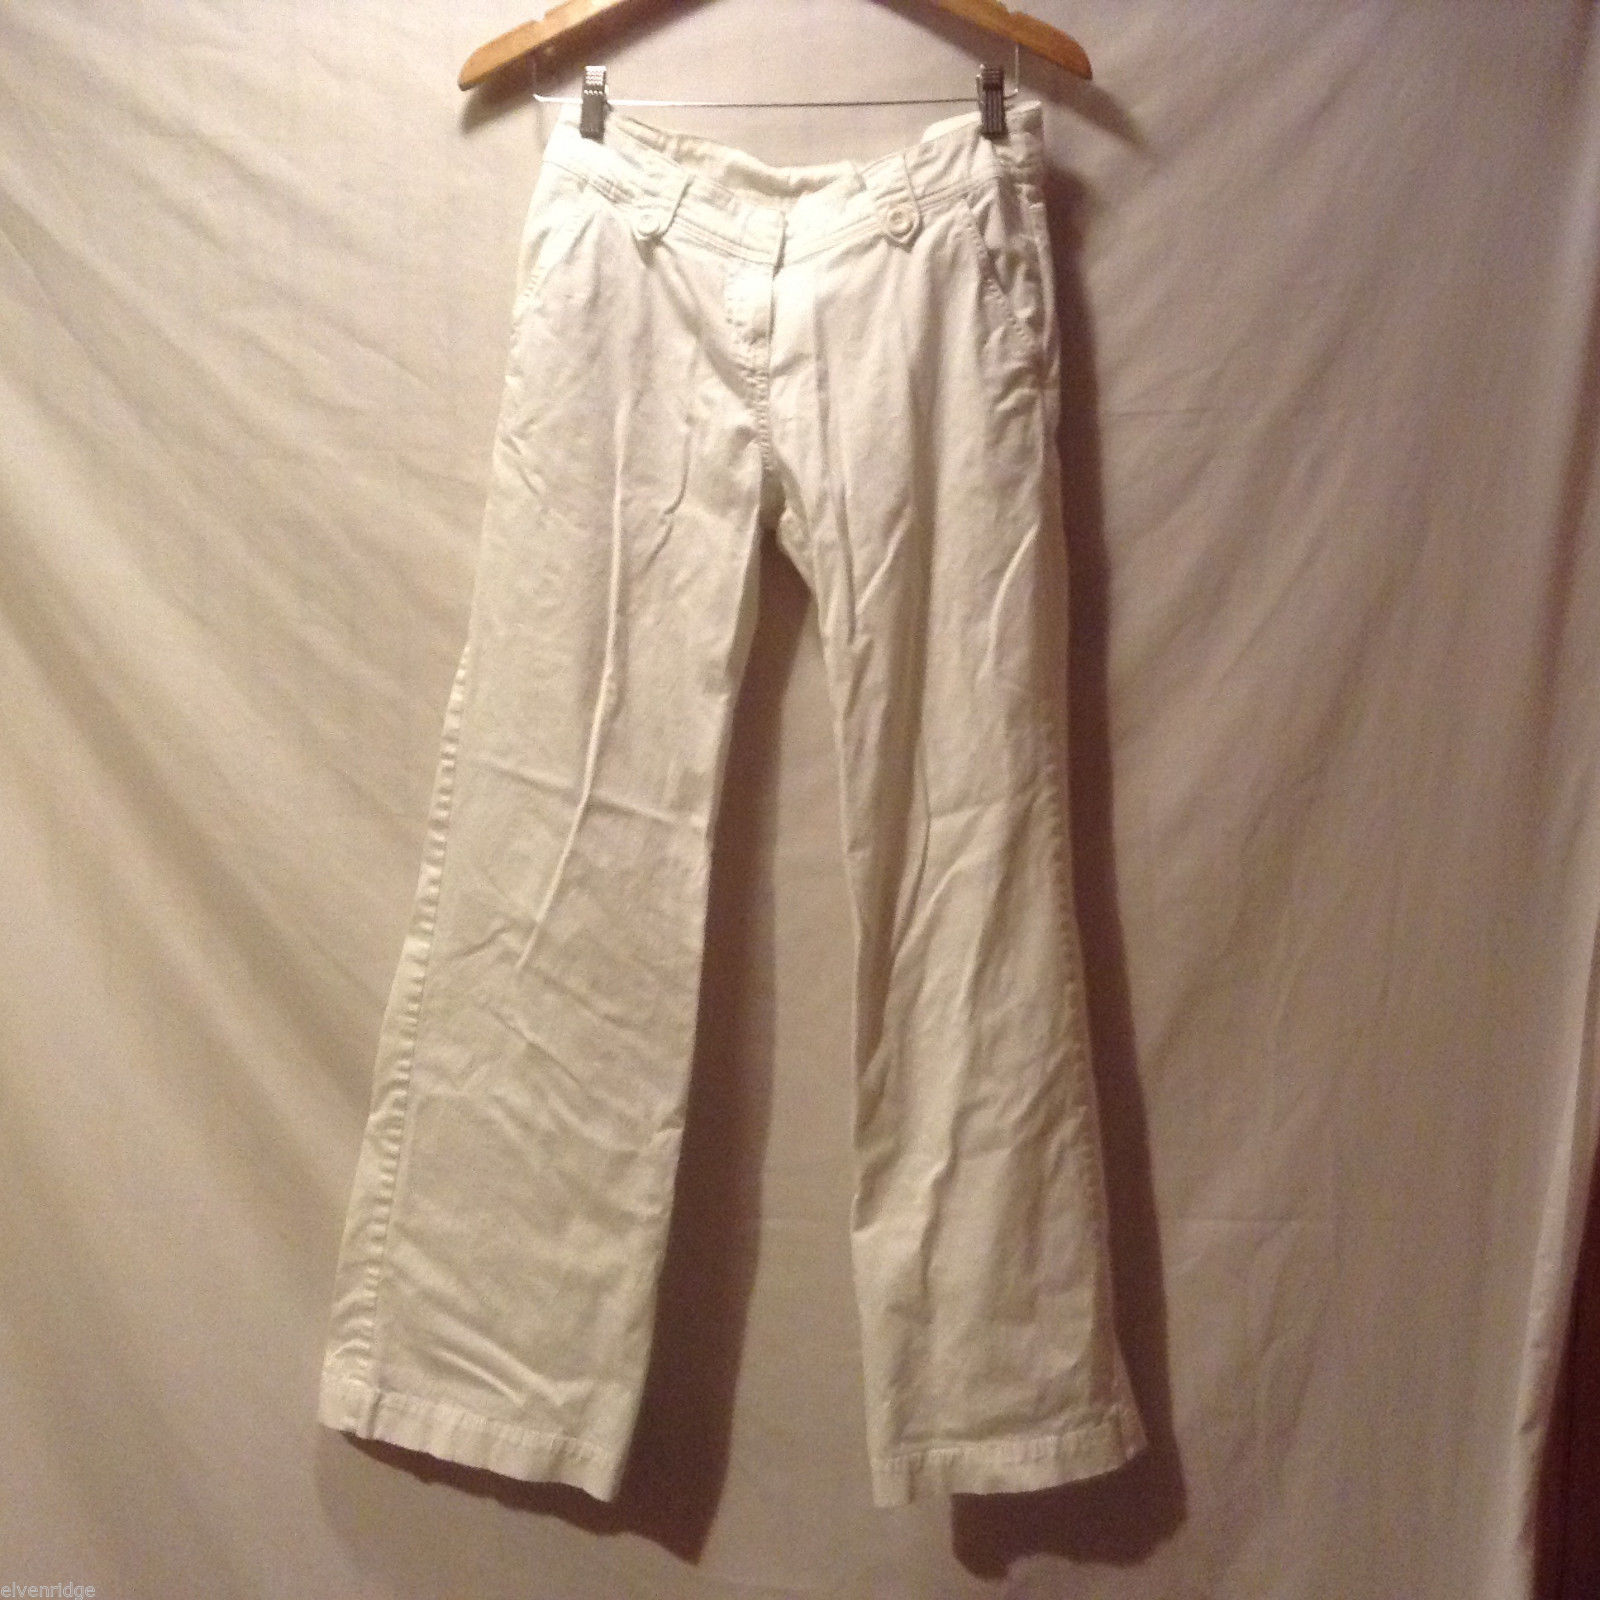 H&M Womens White Stretchy Cotton Casual Pants front and back pockets, Size 8